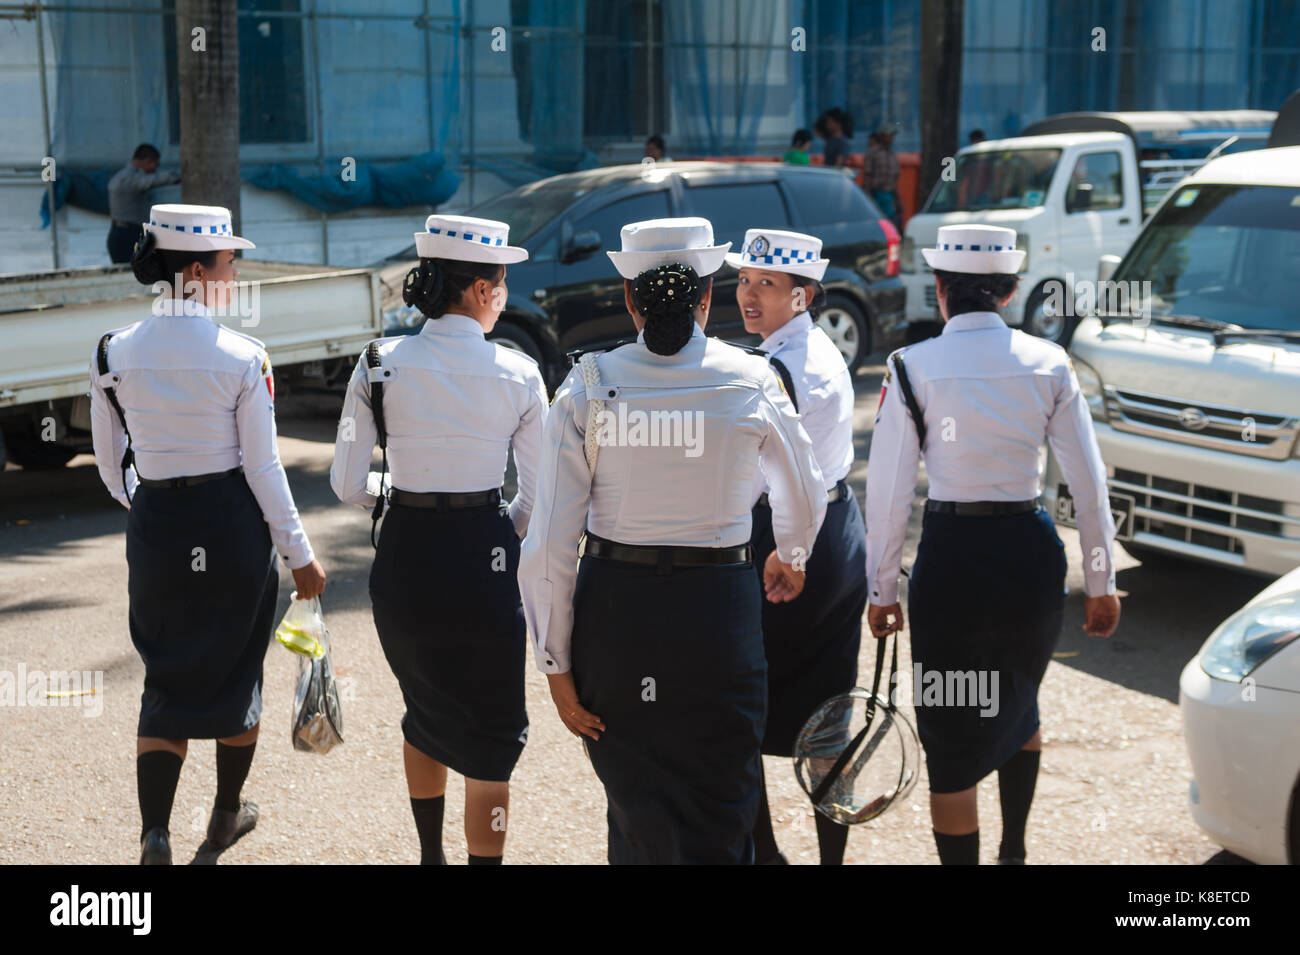 27.01.2017, Yangon, Yangon Region, Republic of the Union of Myanmar, Asia - A group of female traffic police officers - Stock Image